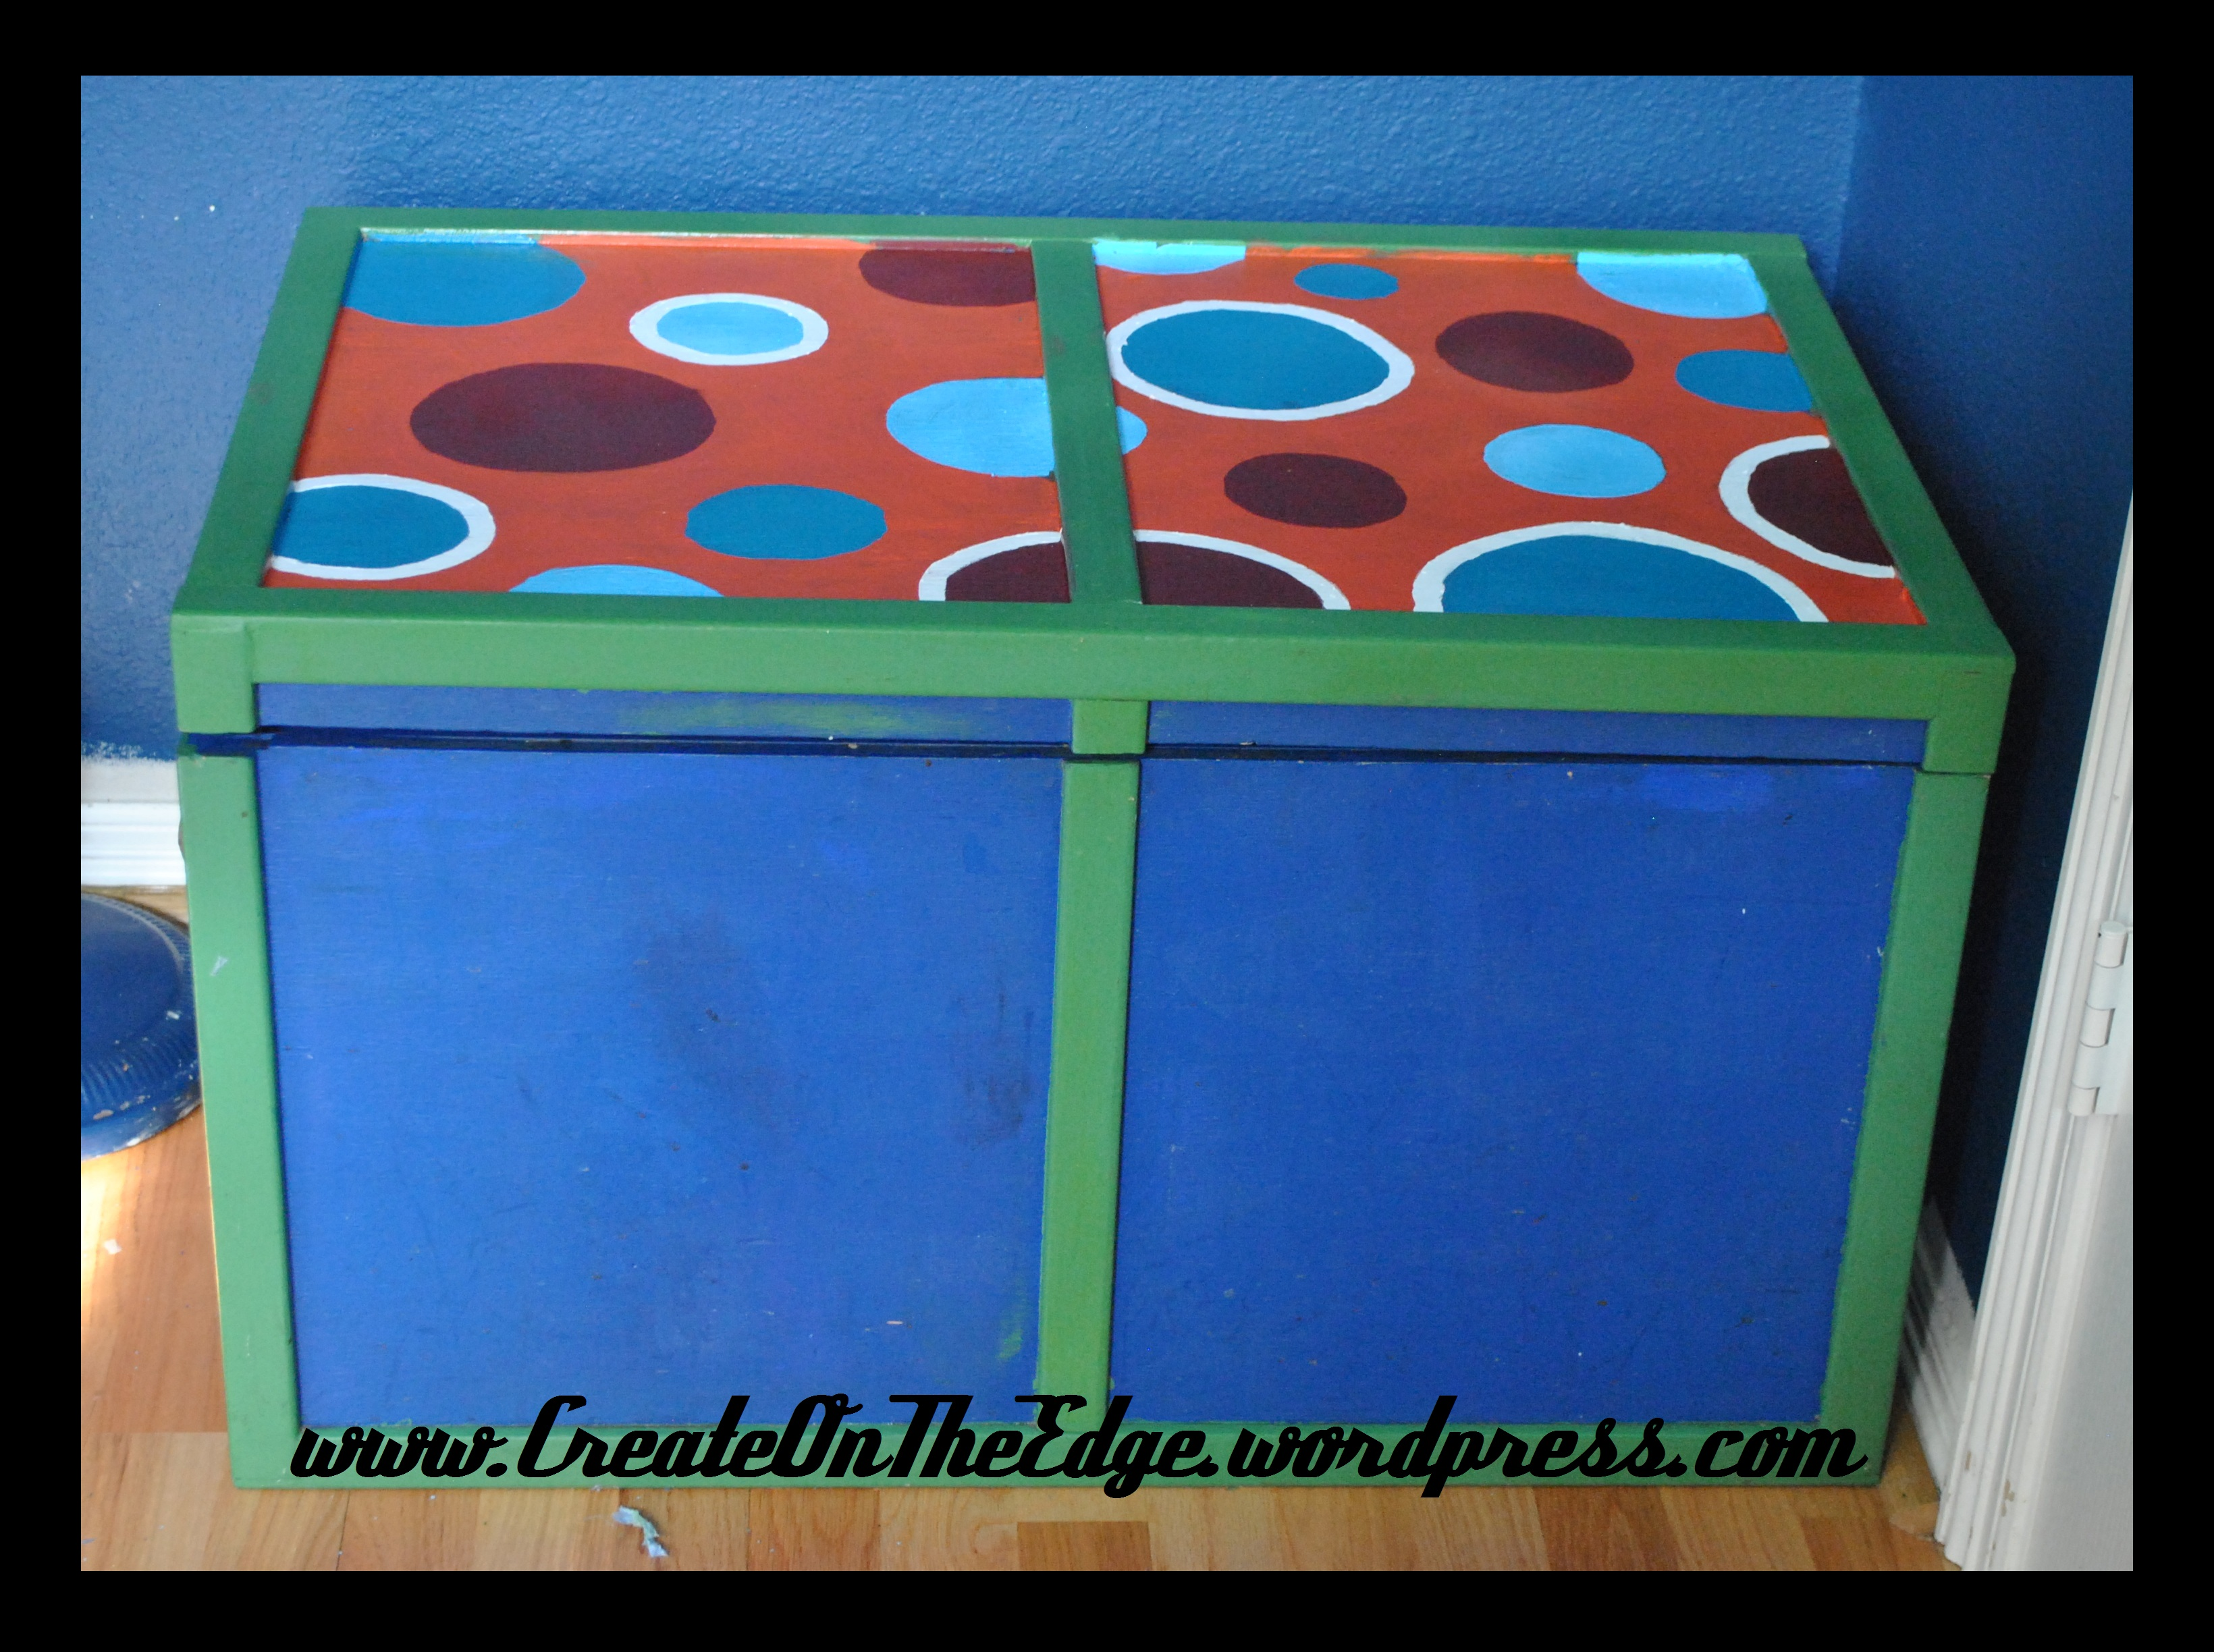 Toy Box Plans For Boys Plans DIY How To Make Quizzical48dhy